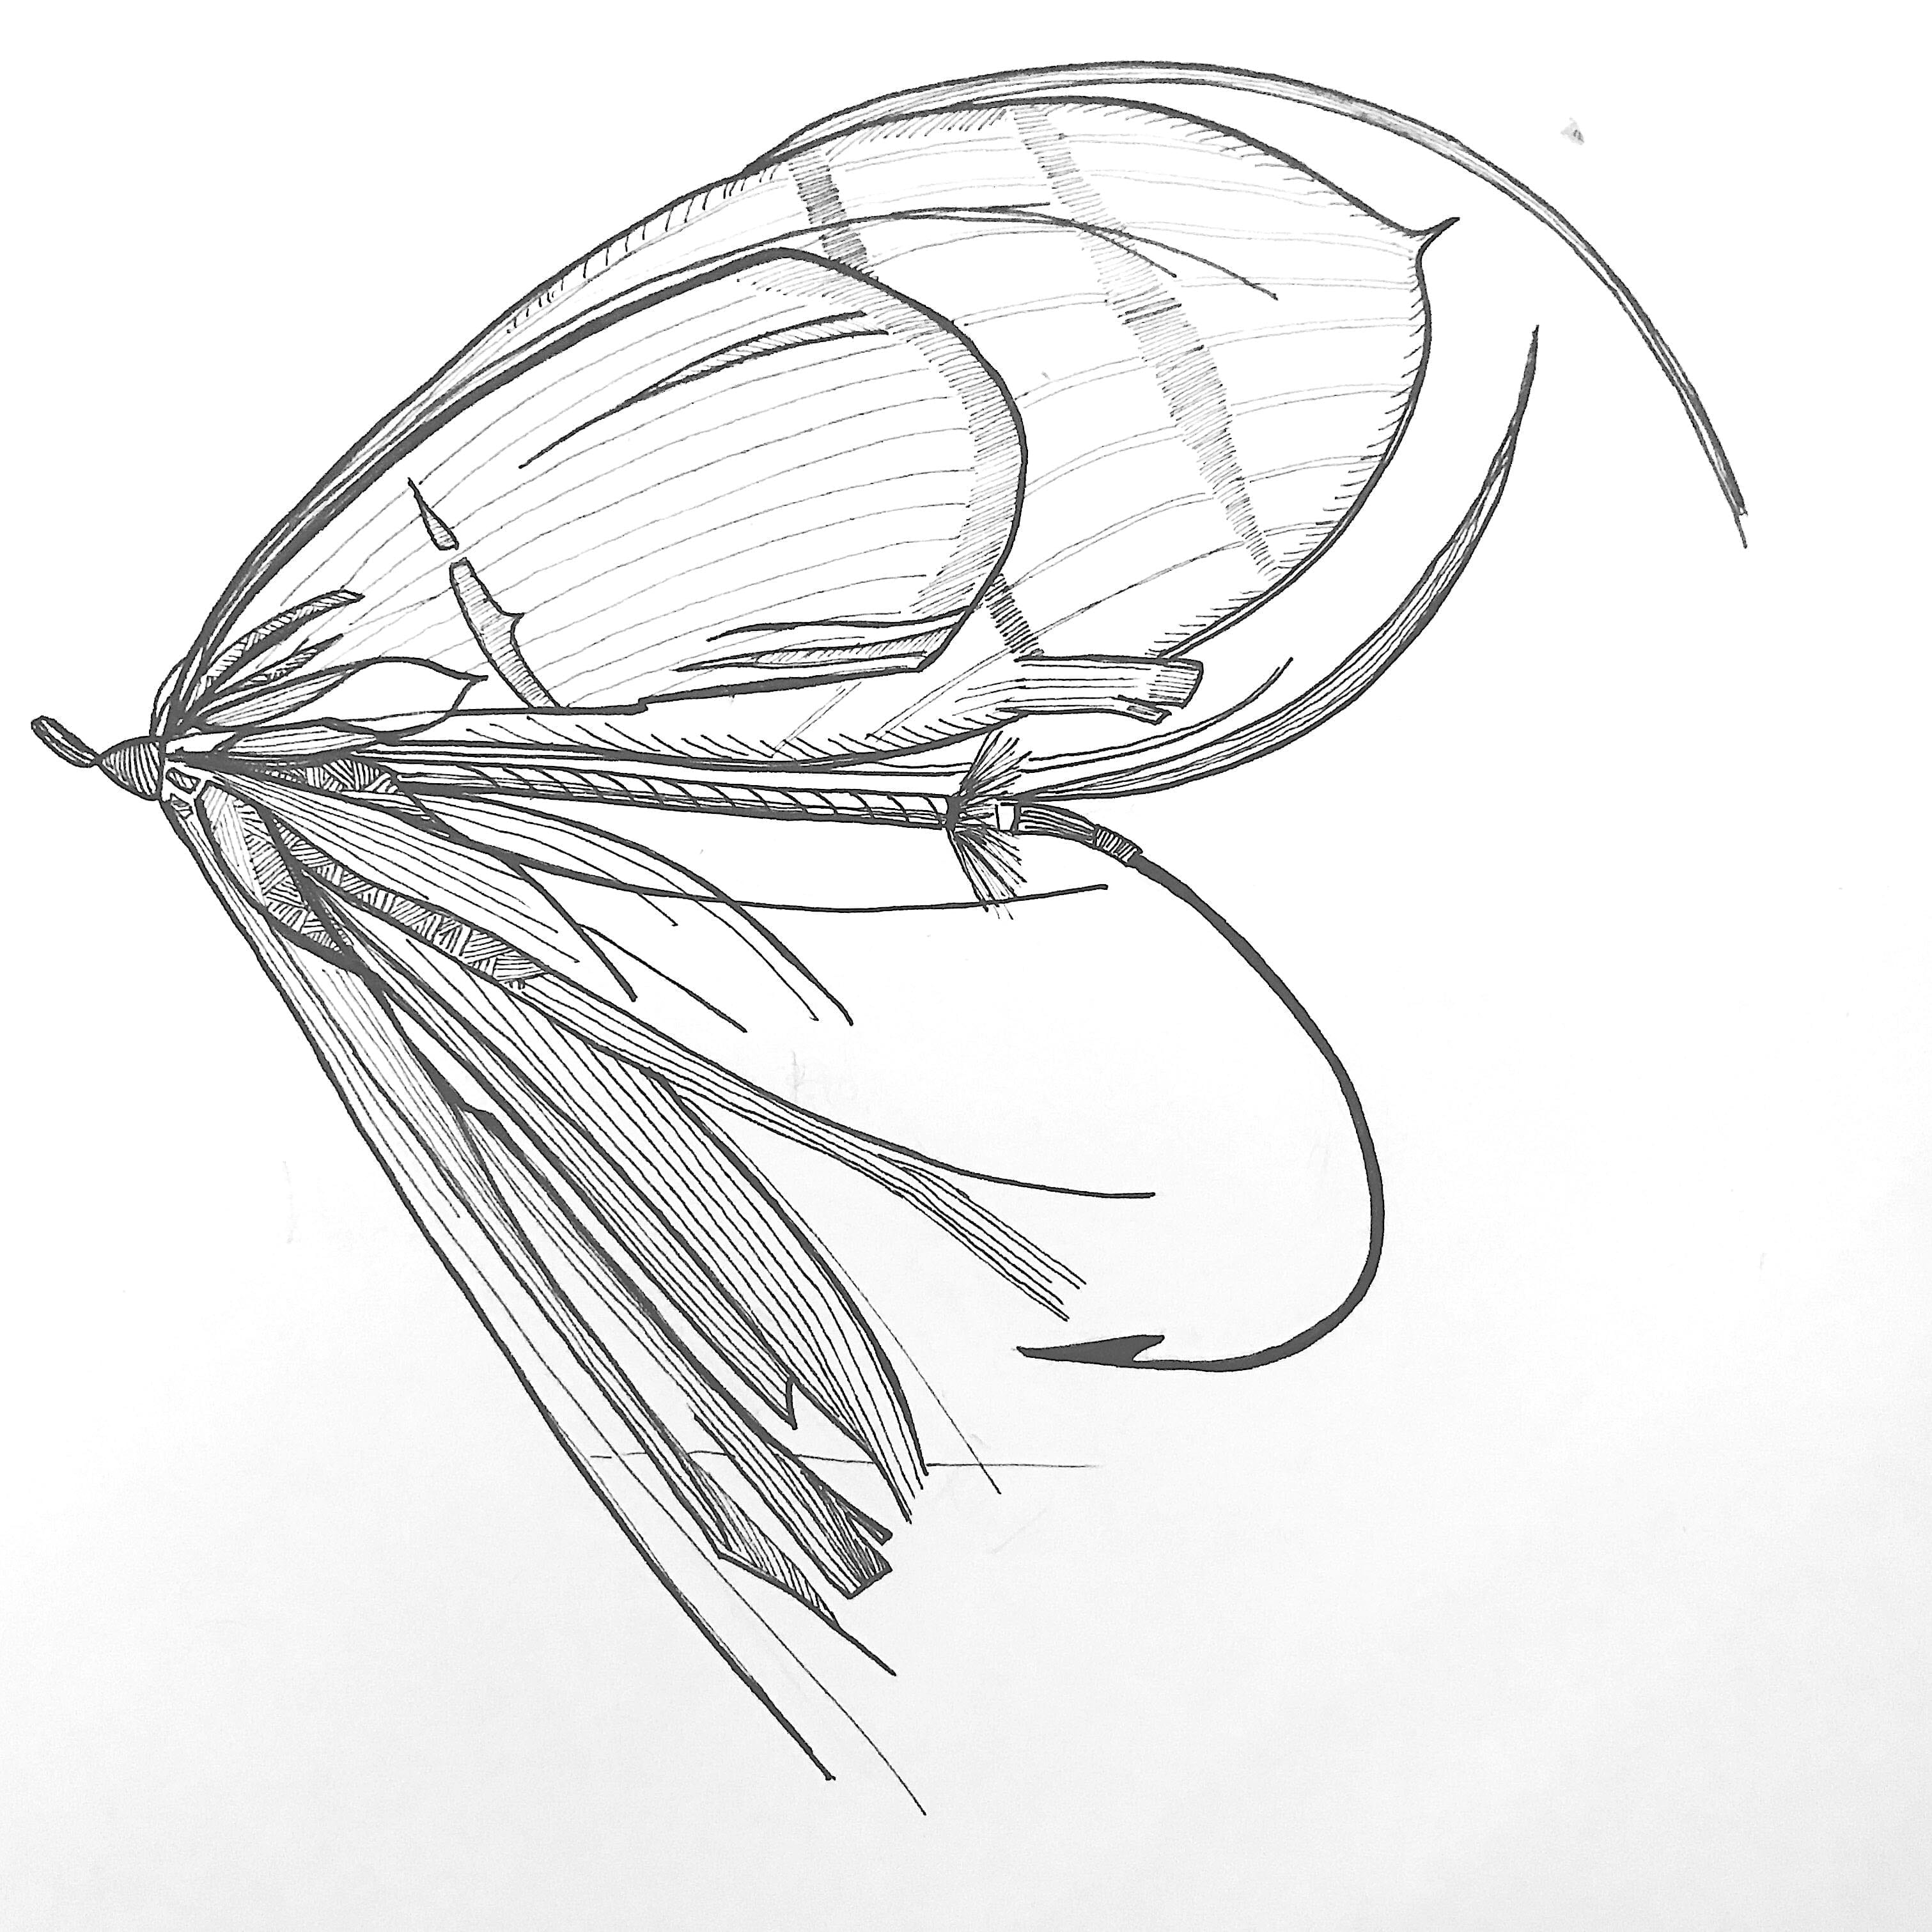 Emma Yardley Fly Drawings I